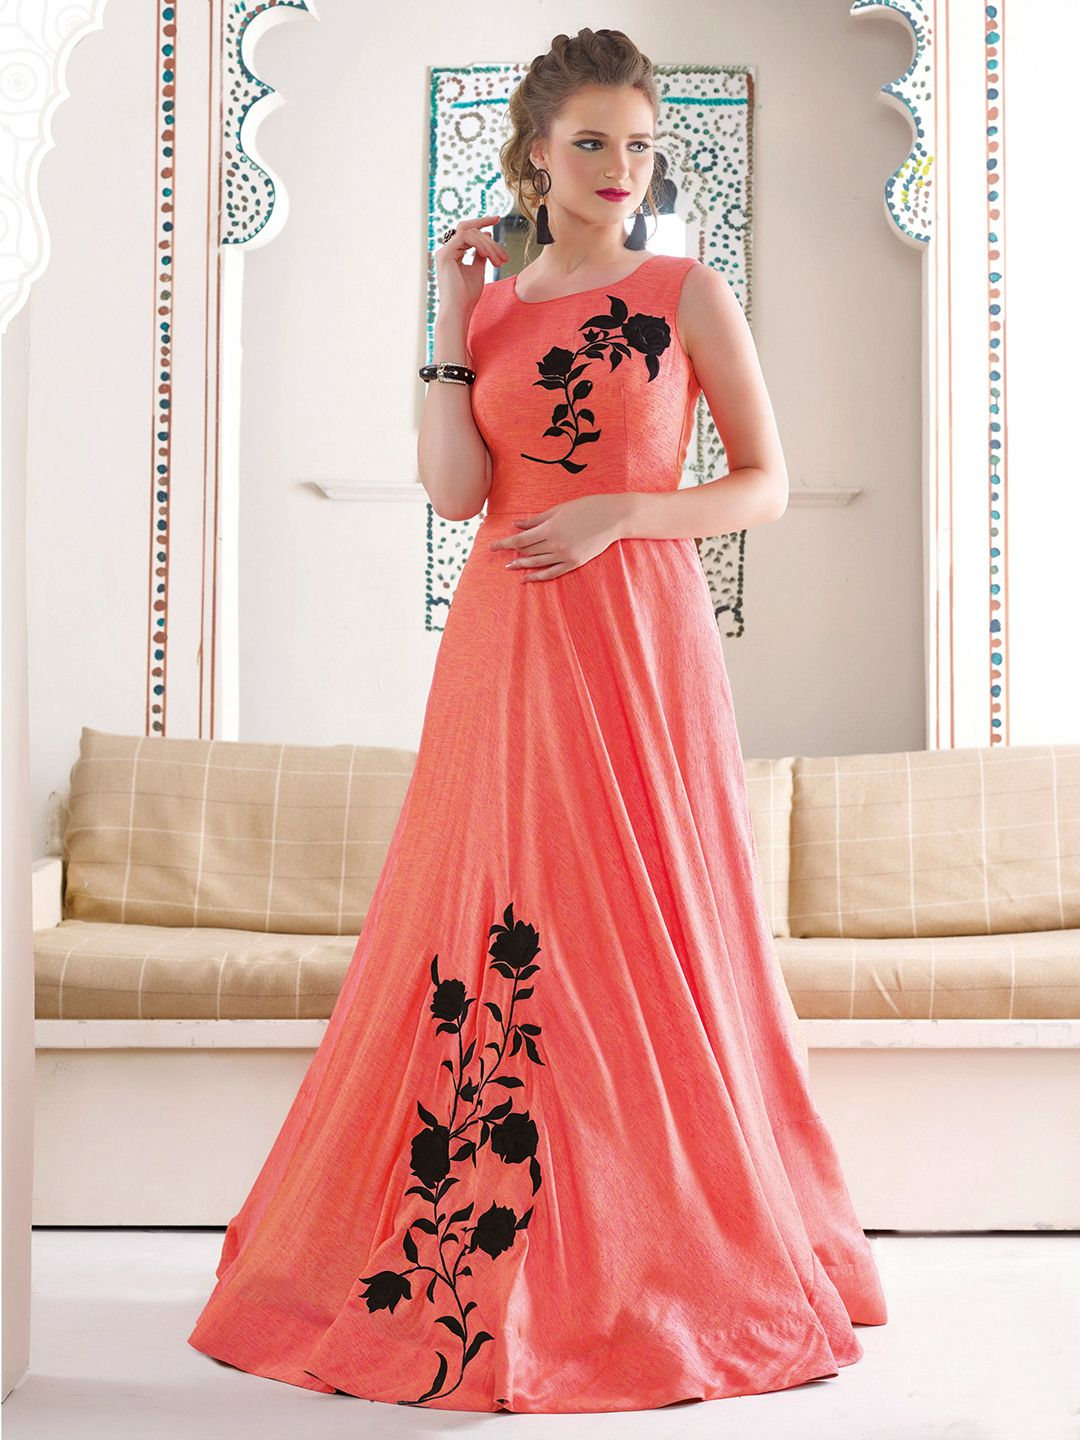 d1b2f8430d Buy Gorgeous Indian Gowns 2017 Online at Best Price. Shop latest bridal  gowns, party wear gowns, Long wedding gowns in anarkali style.